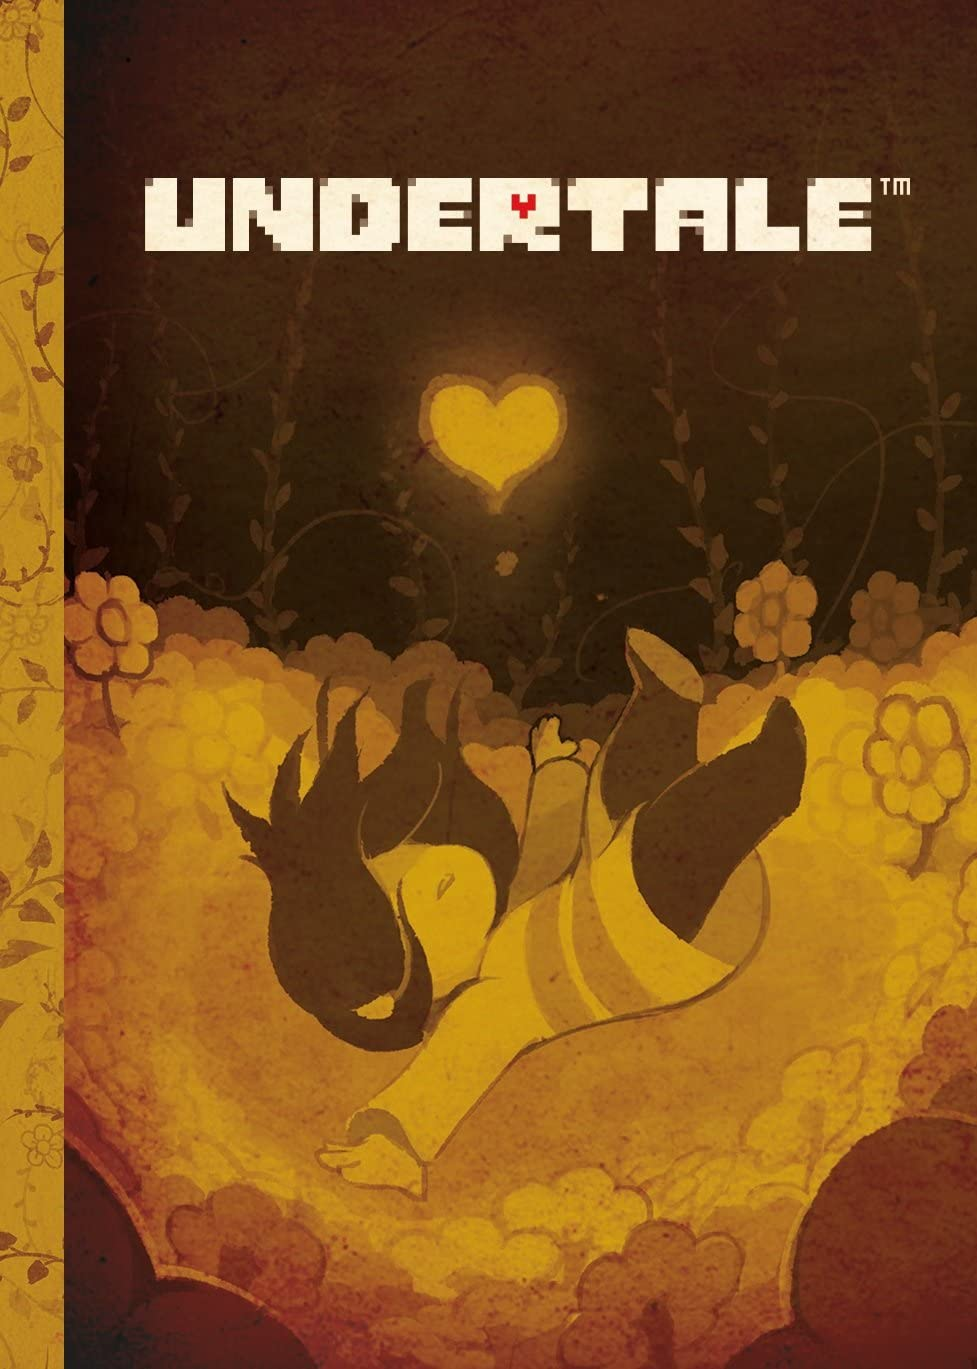 8-4 Fangamer Undertale RPG NINTENDO SWITCH JAPANESE IMPORT REGION FREE [video game]: Amazon.es: Videojuegos